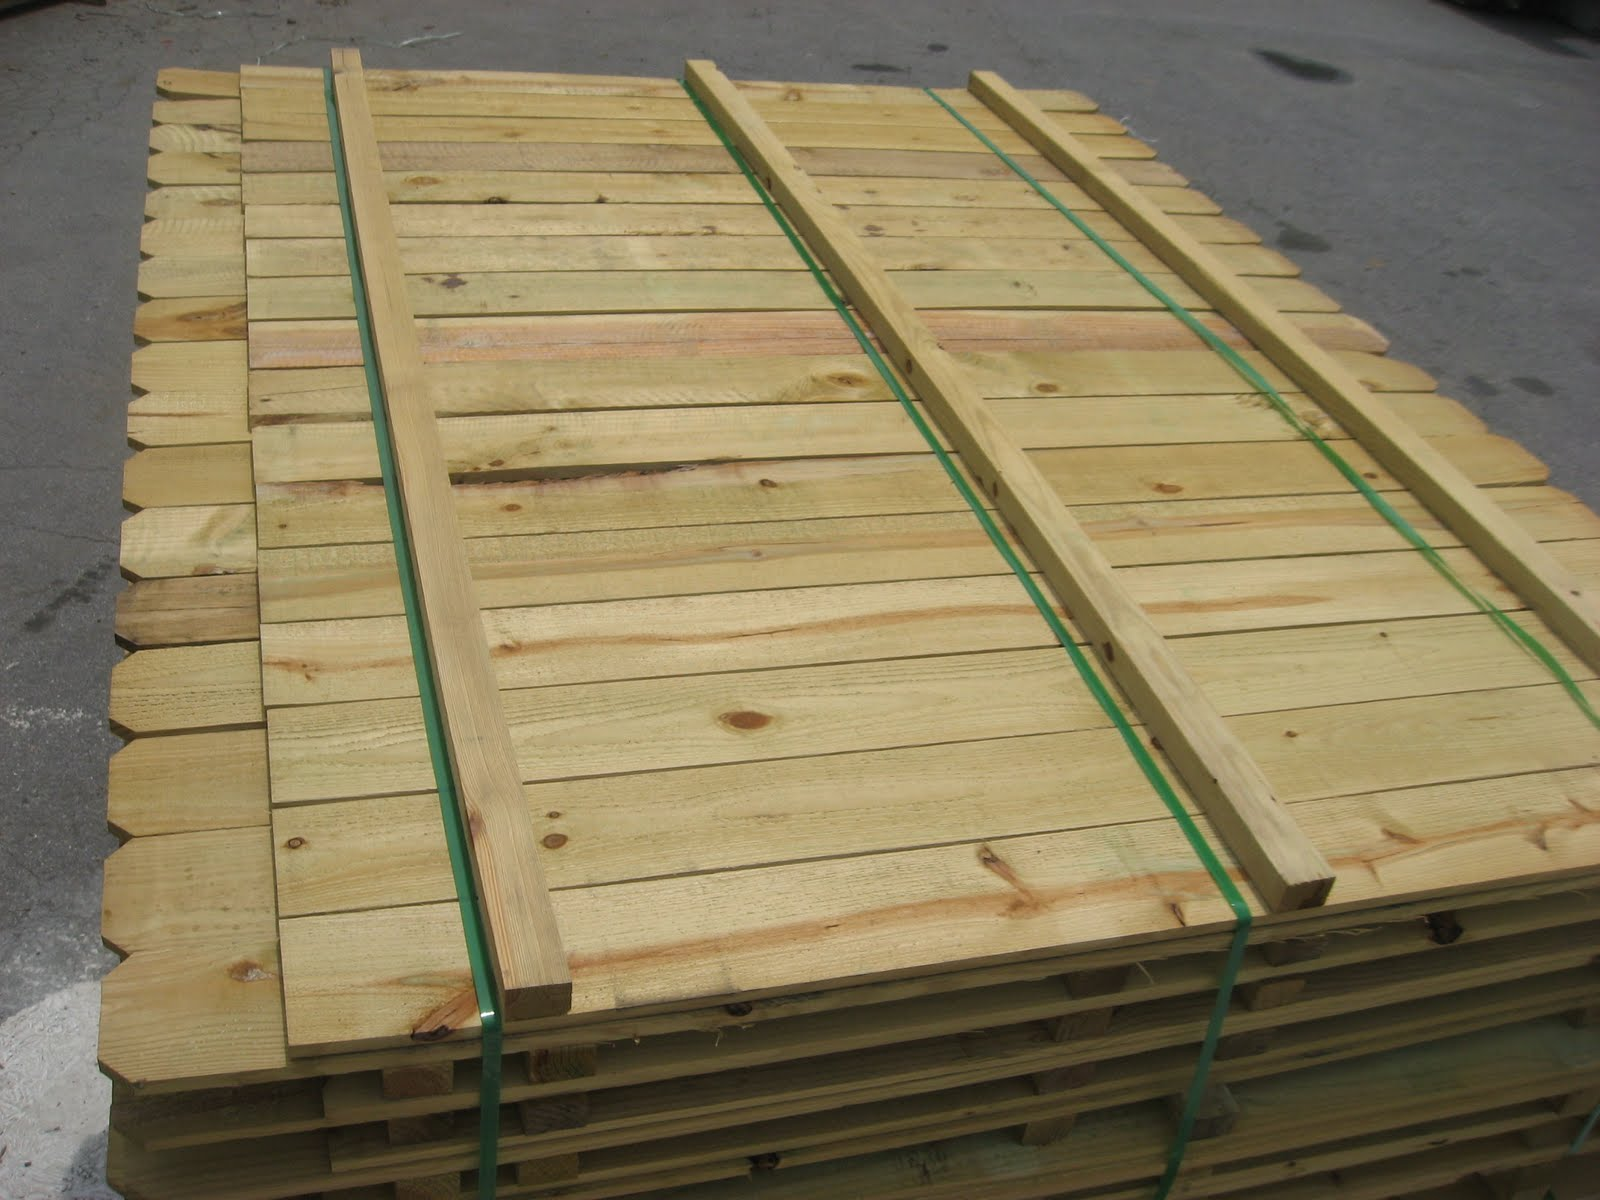 Marvelous photograph of Treated Wood Privacy Fence made from 5/8 thick boards not the cheap  with #8A6C41 color and 1600x1200 pixels